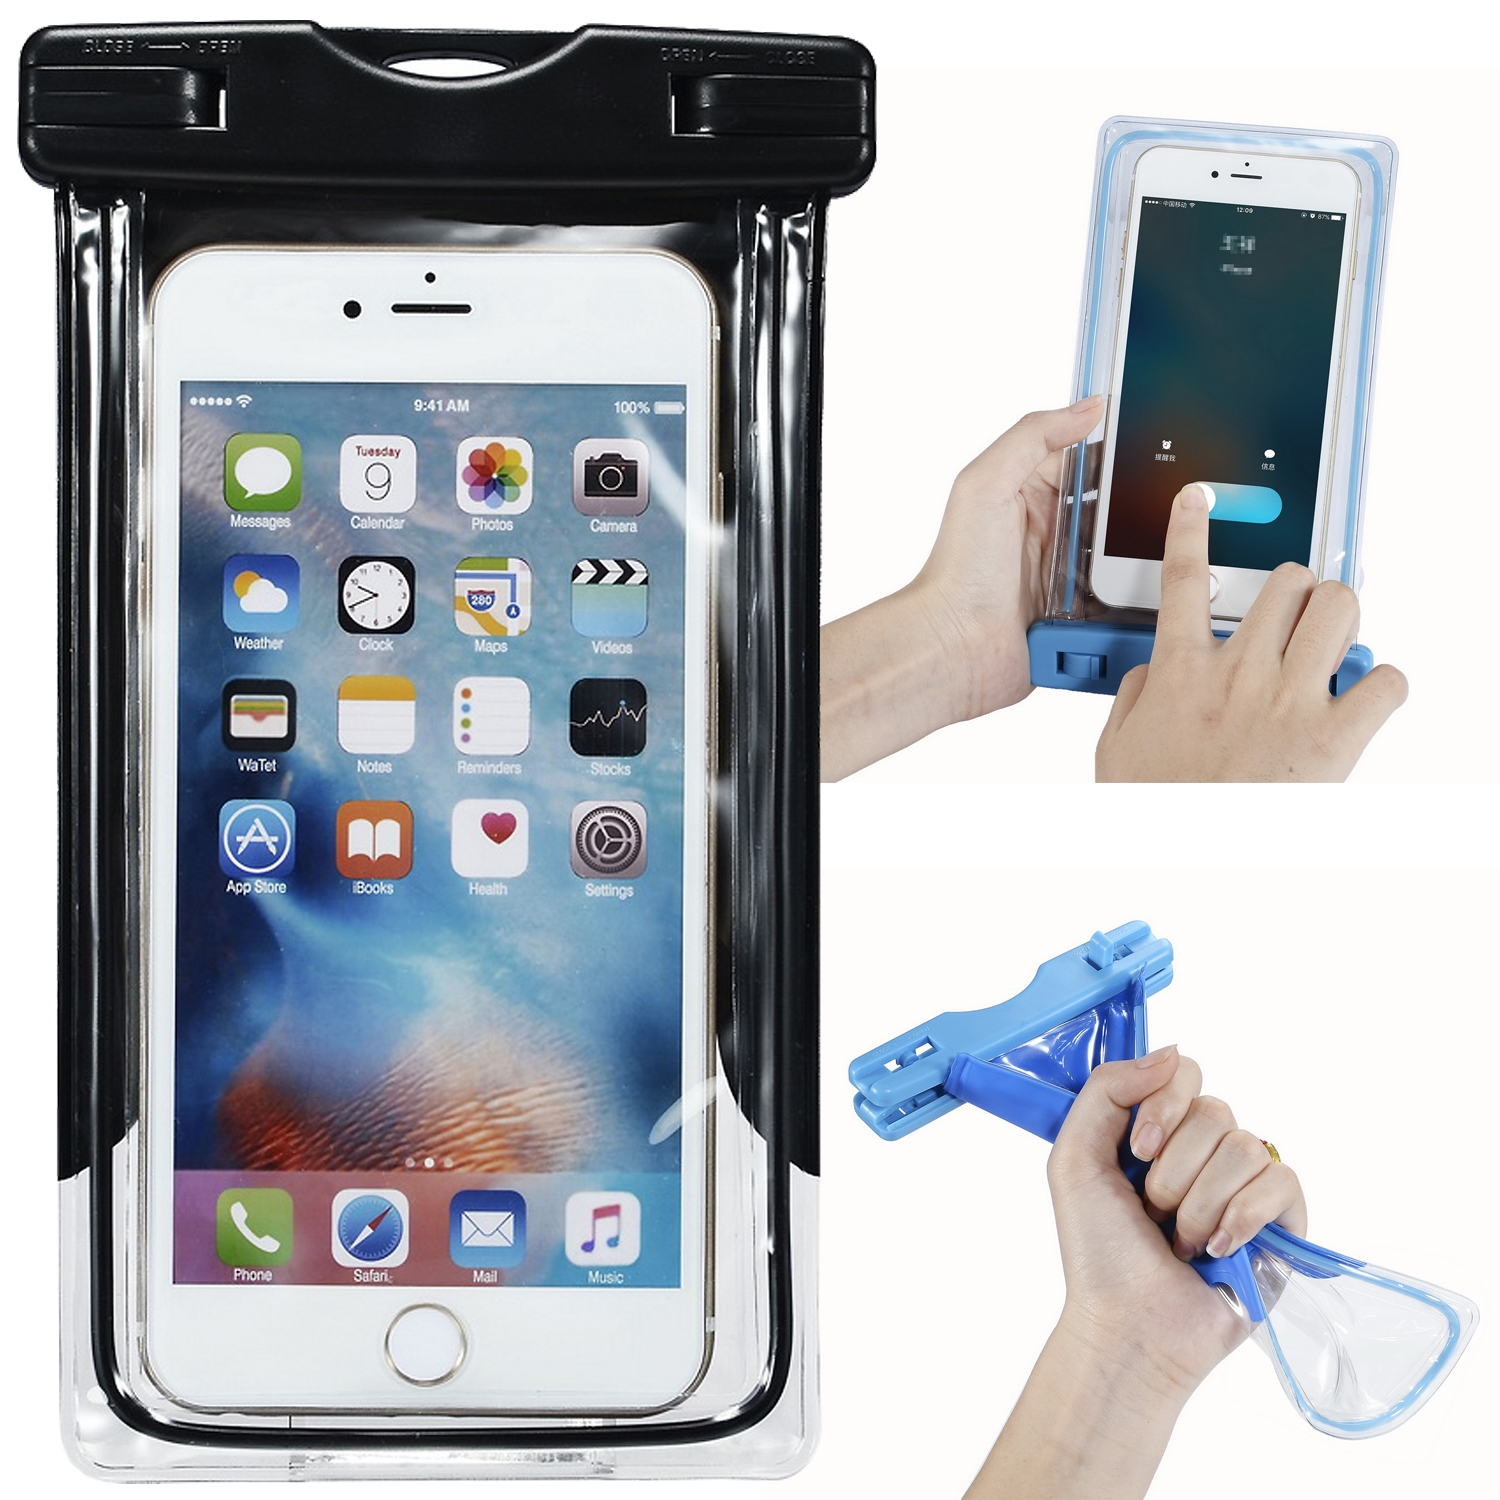 Details about Waterproof Underwater Bag Pouch Dry Case Cover Black For  iPhone Samsung OnePlus